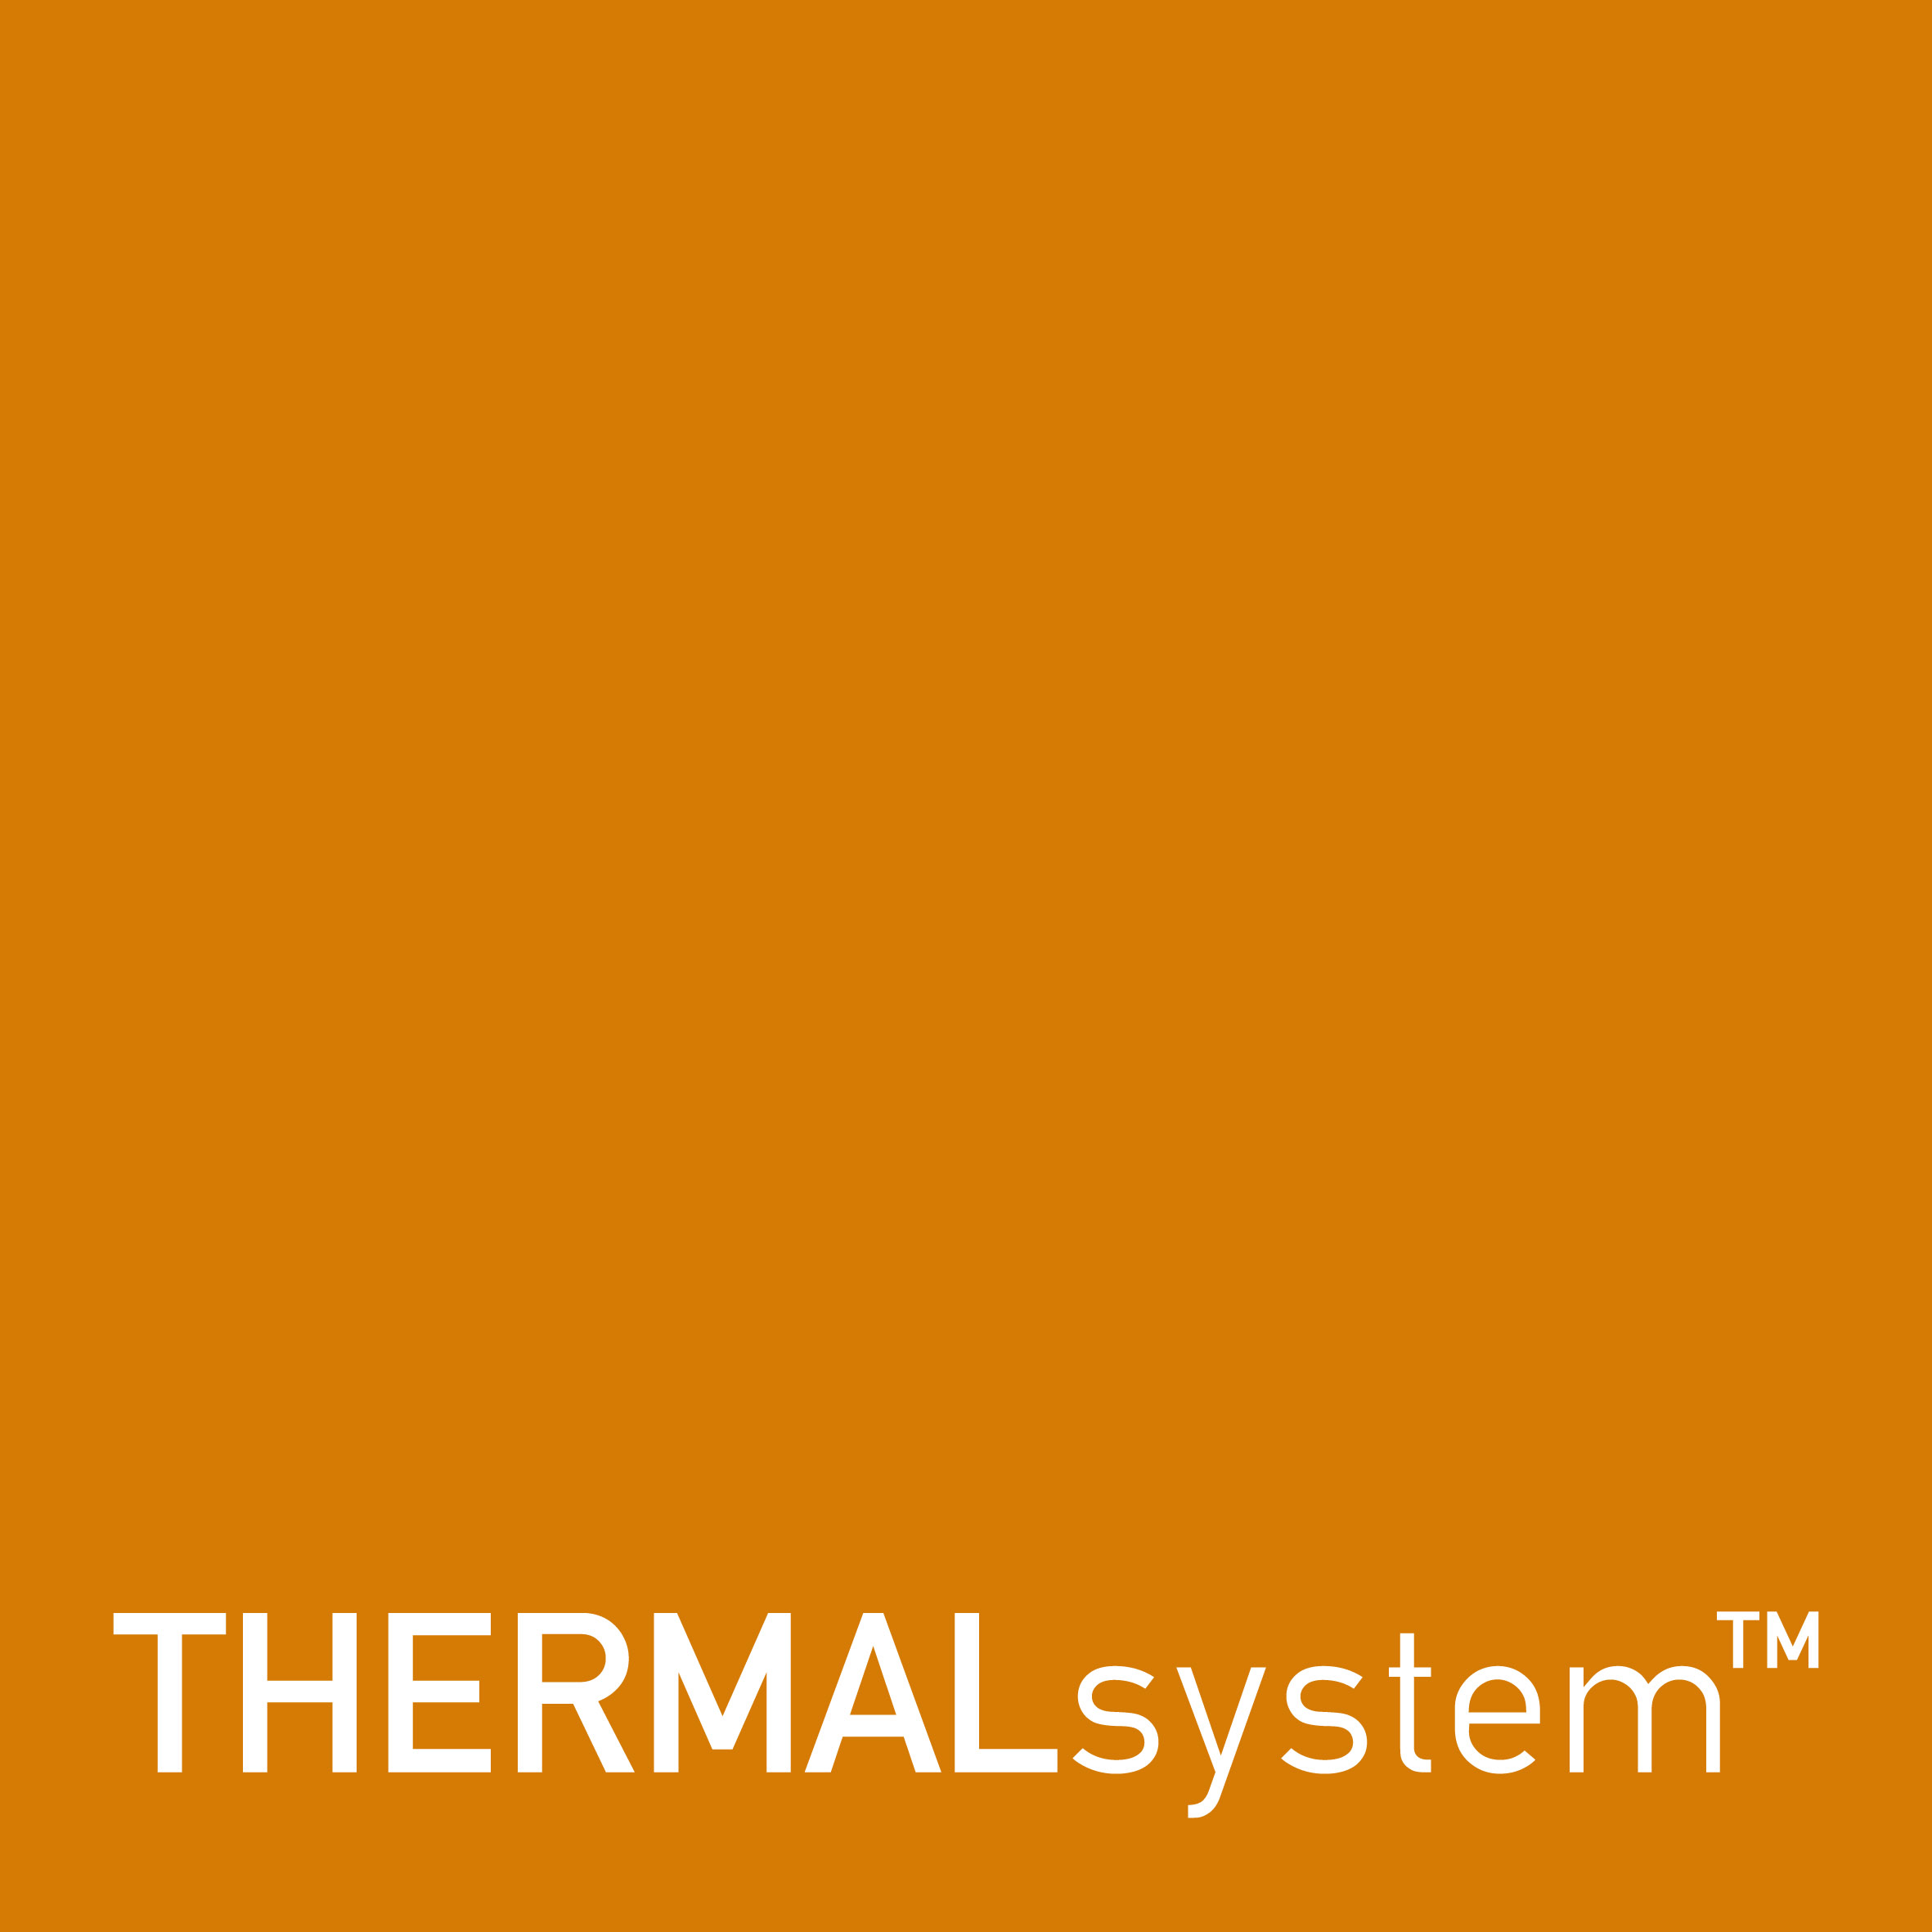 Thermal system (insulating)